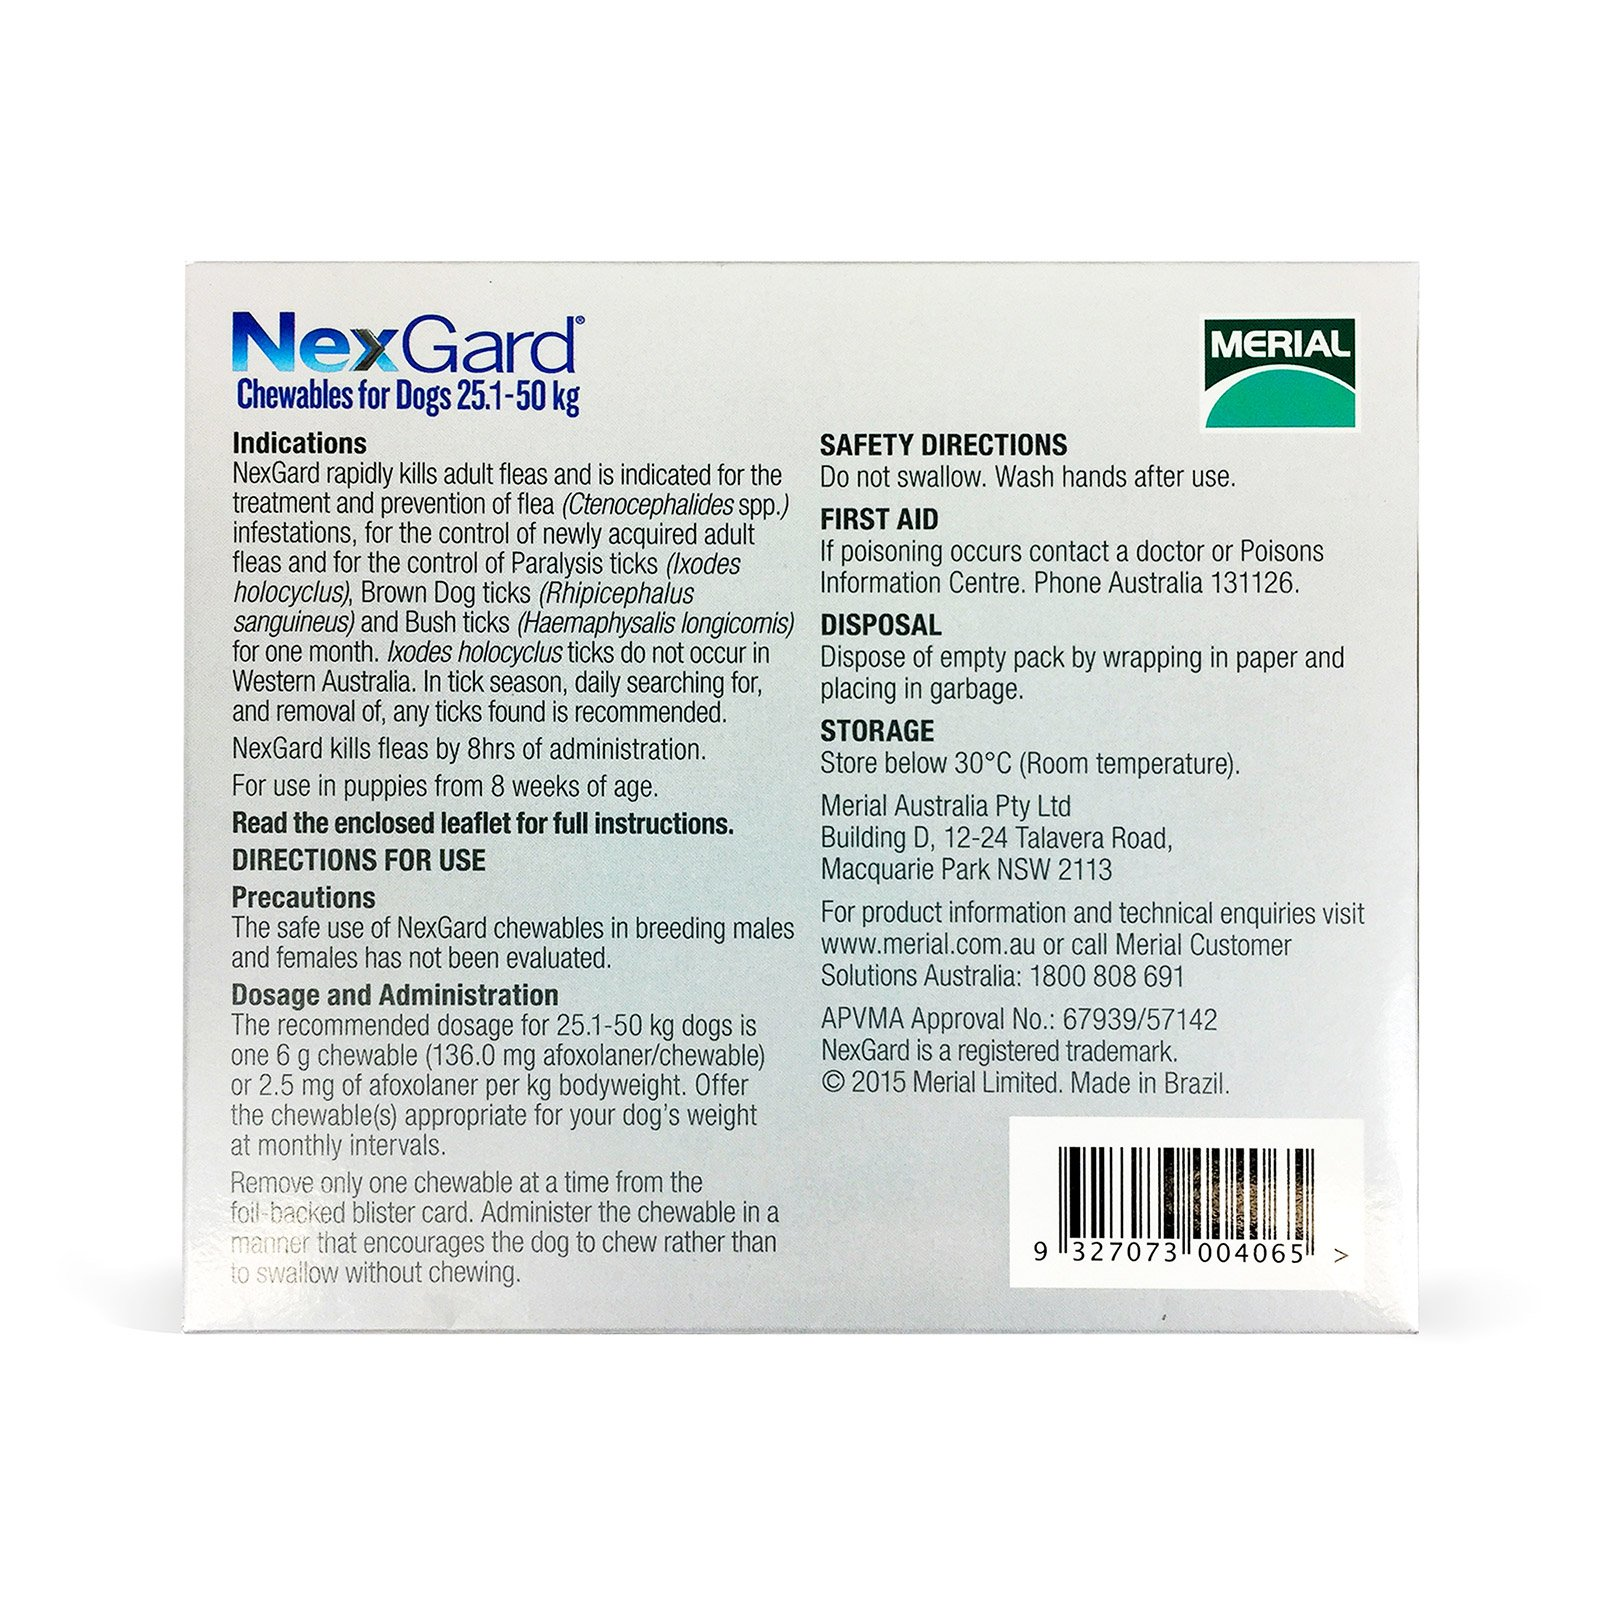 nexgard-chewables-for-dogs-25-50-kg_3-back.jpg